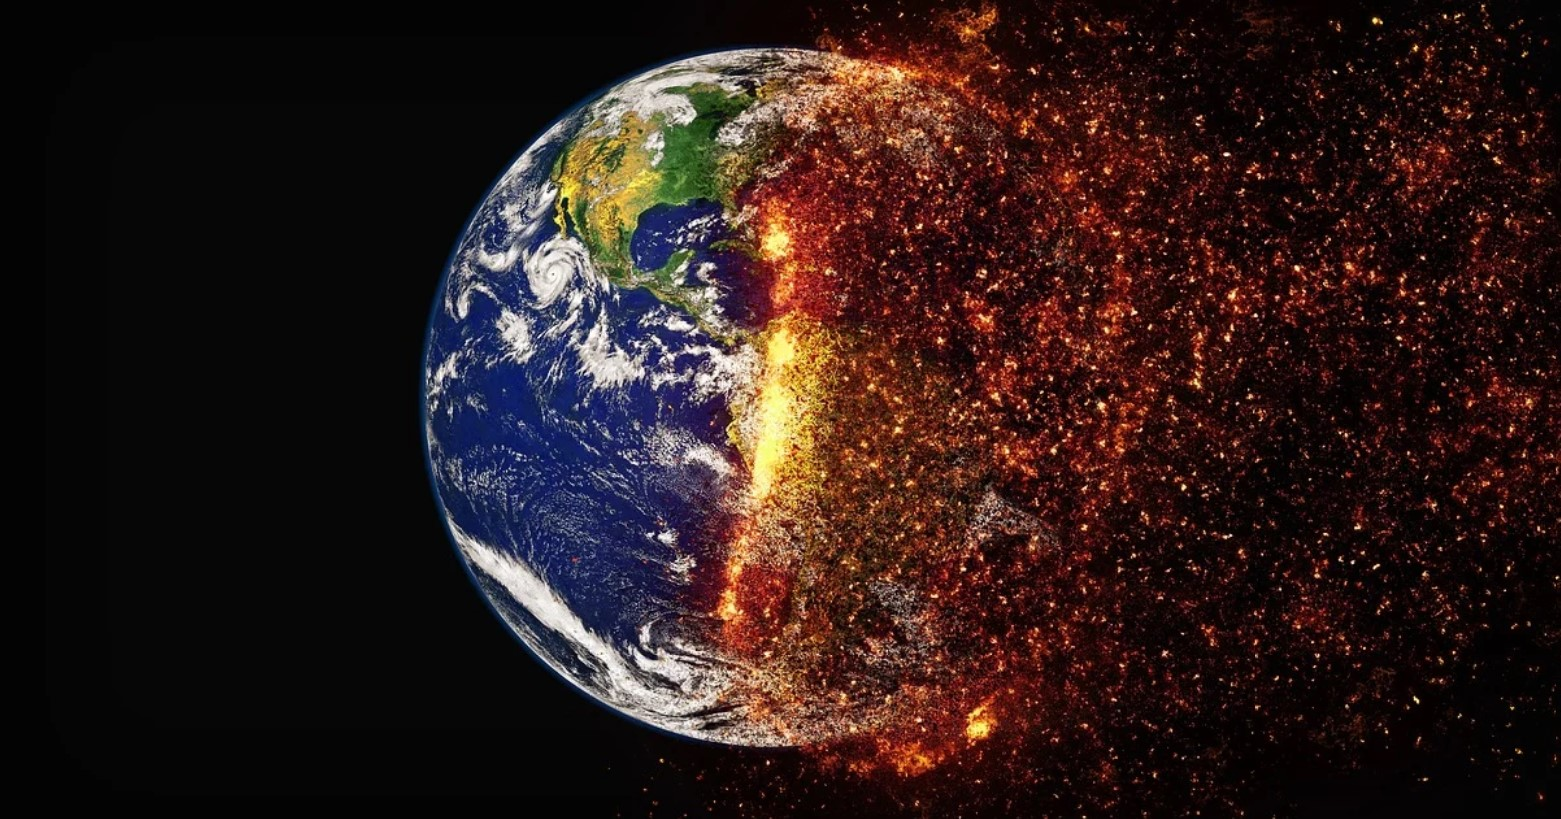 The earth burning due to climate change